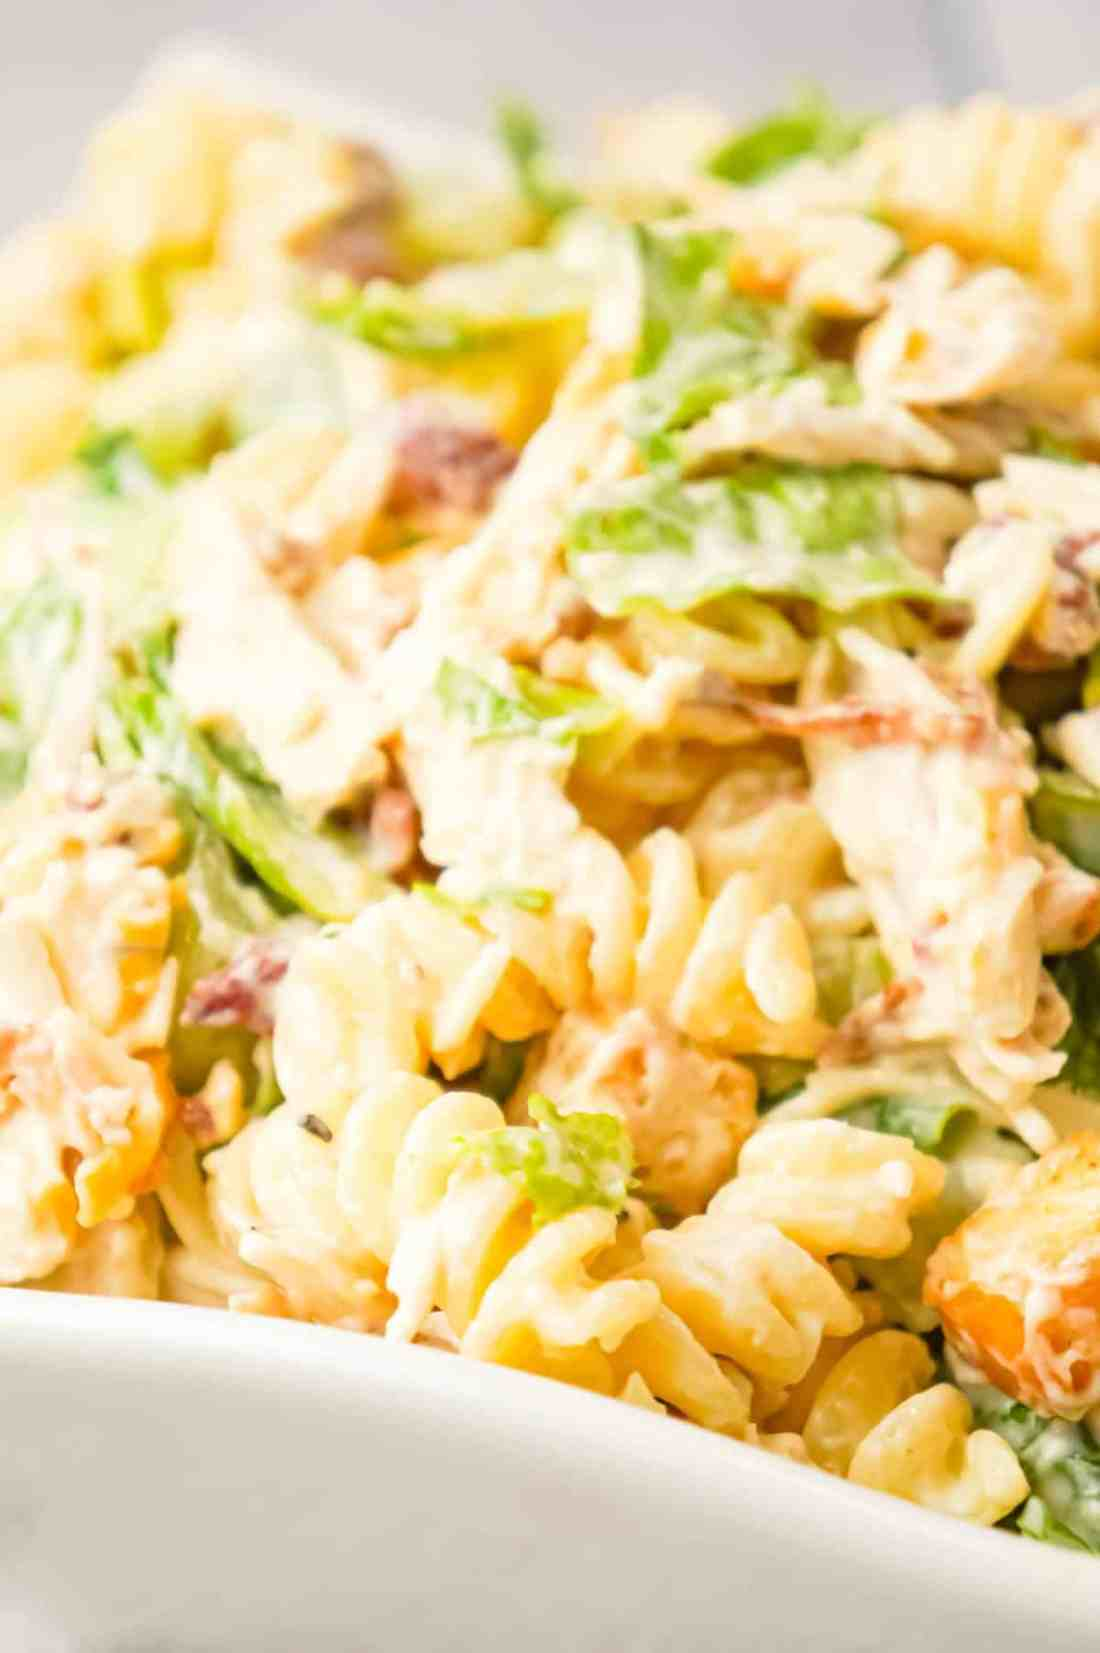 Chicken Caesar Pasta Salad is a tasty side cold dish recipe loaded with chopped romaine, shredded chicken, crumbled bacon, croutons, shredded mozzarella, cheddar and Parmesan cheese all tossed in a creamy garlic Parmesan dressing.